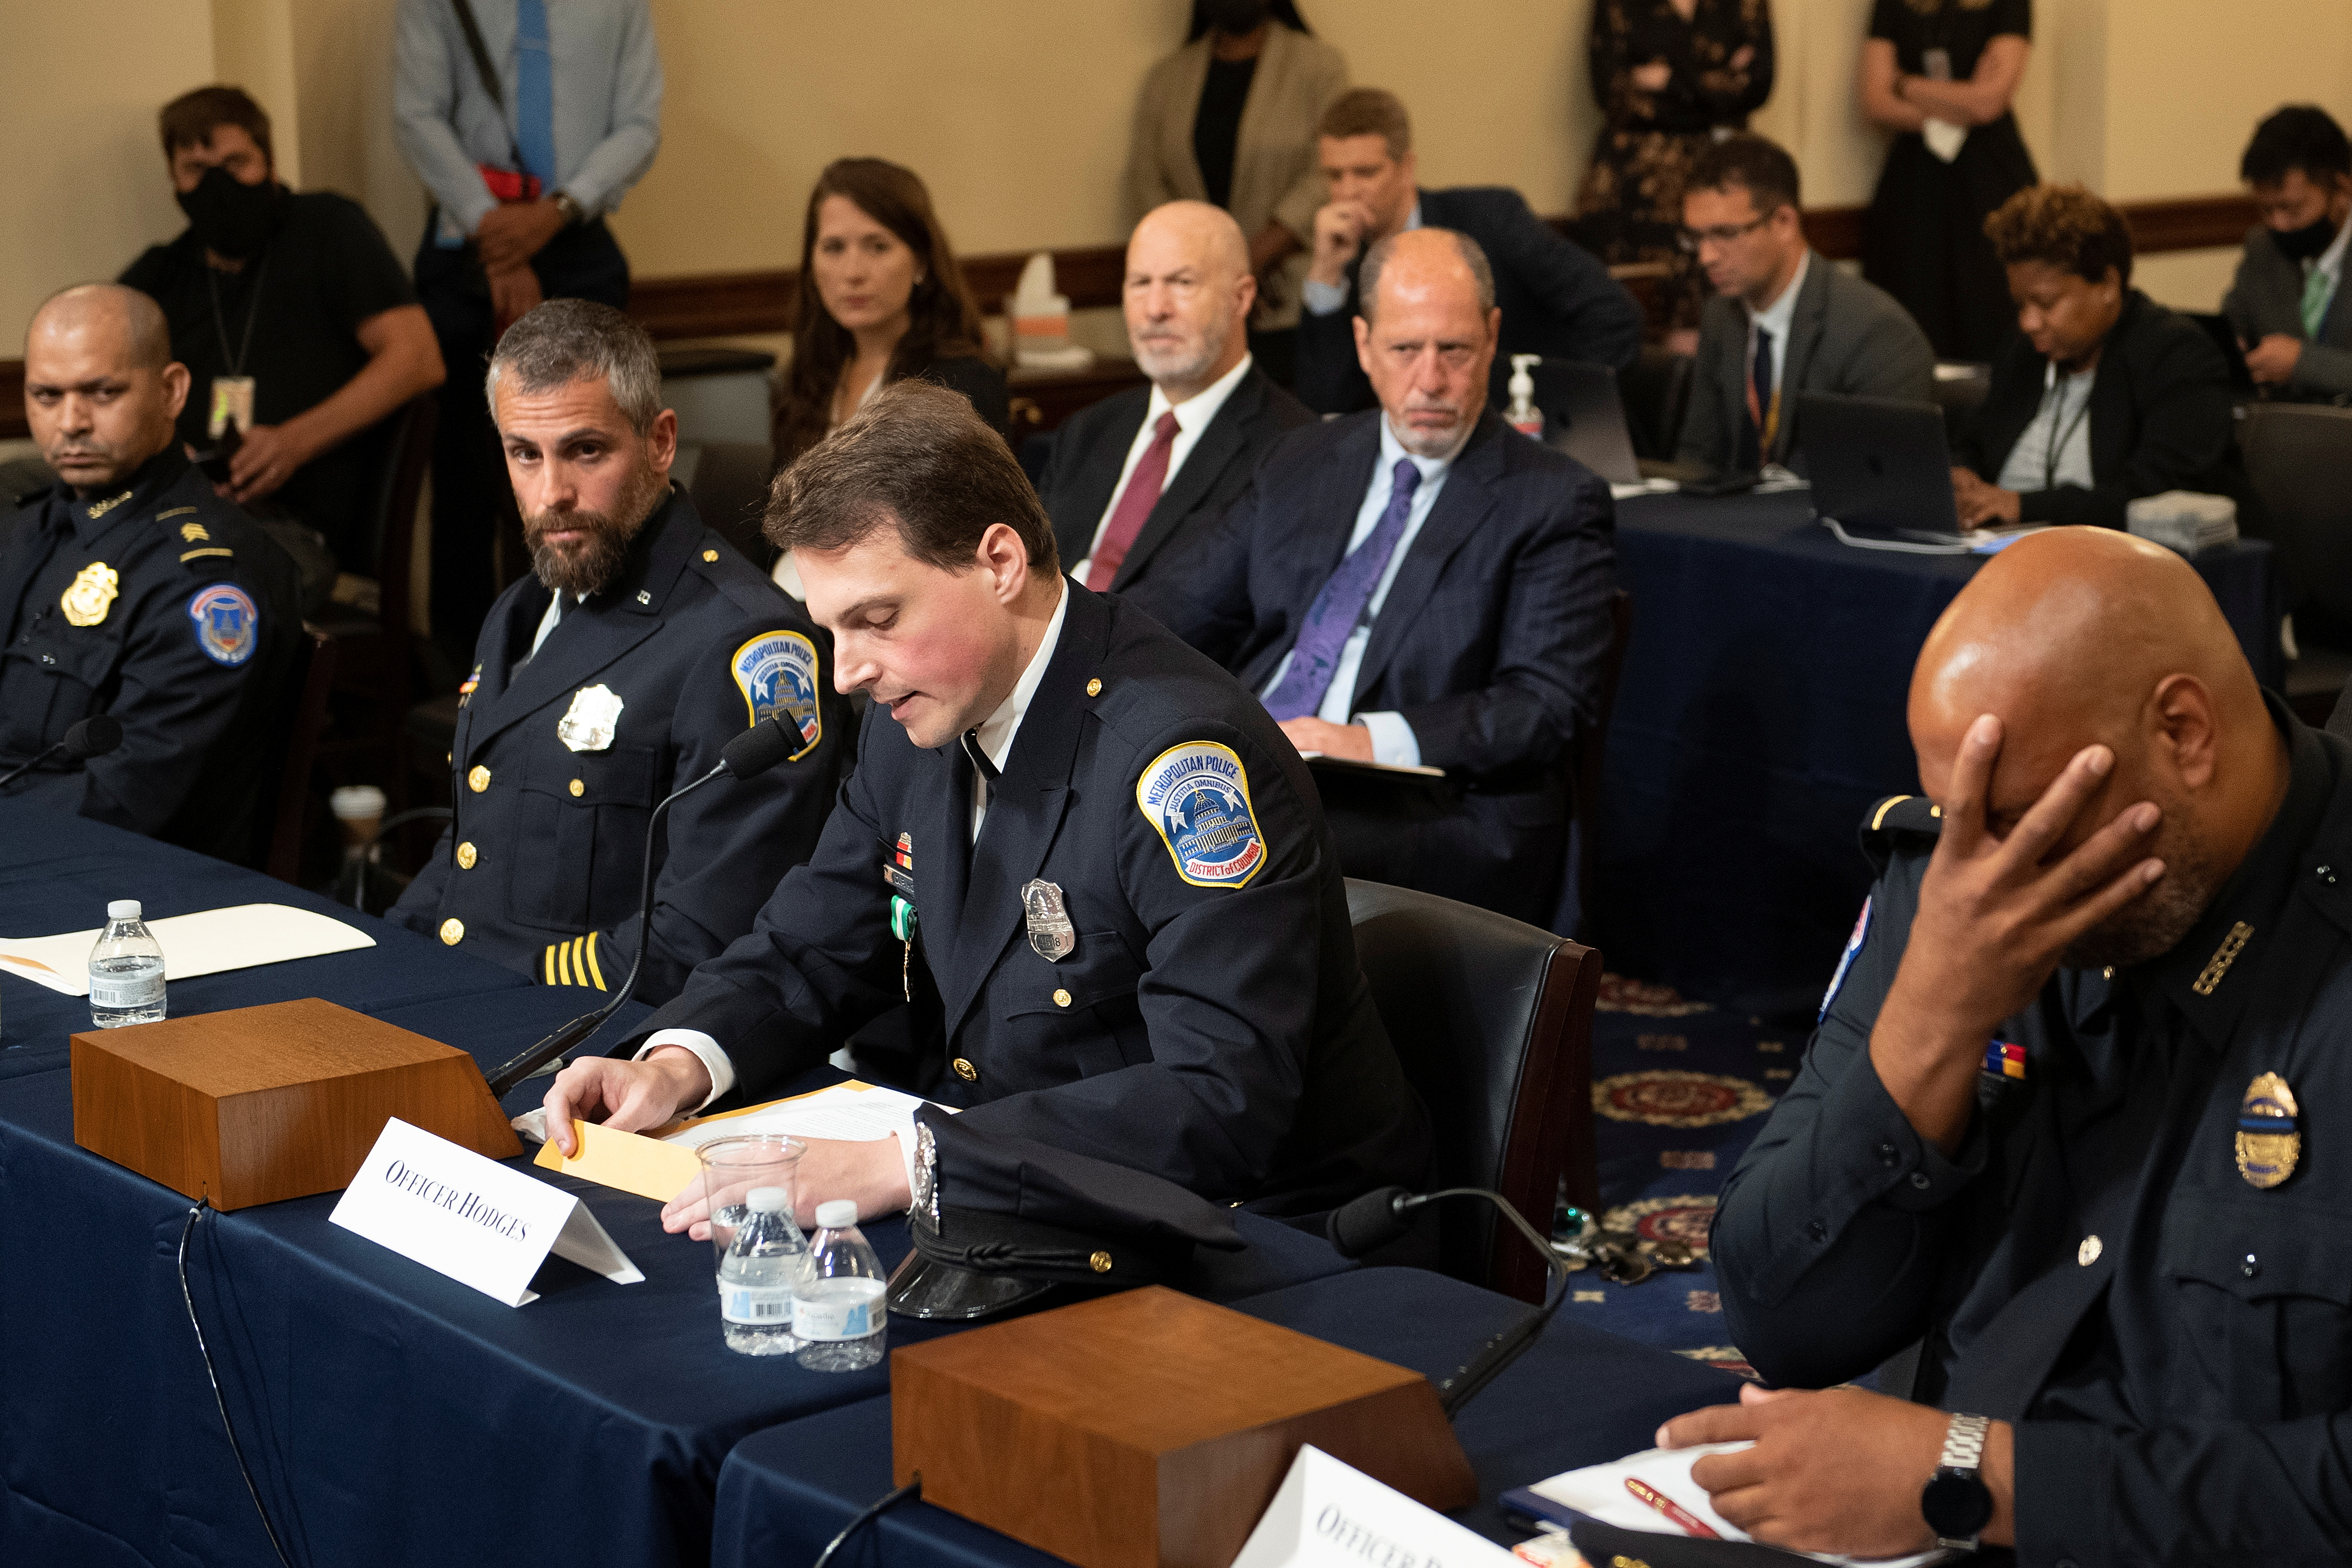 Aquilino Gonell, sergeant of the U.S. Capitol Police, Michael Fanone, officer for the Metropolitan Police Department, and Harry Dunn, private first class of the U.S. Capitol Police, listen while Daniel Hodges, officer for the Metropolitan Police Department, testifies during a hearing of the House select committee investigating the Jan. 6 attack on Capitol Hill in Washington, U.S., July 27, 2021.  Brendan Smialowski/Pool via REUTERS